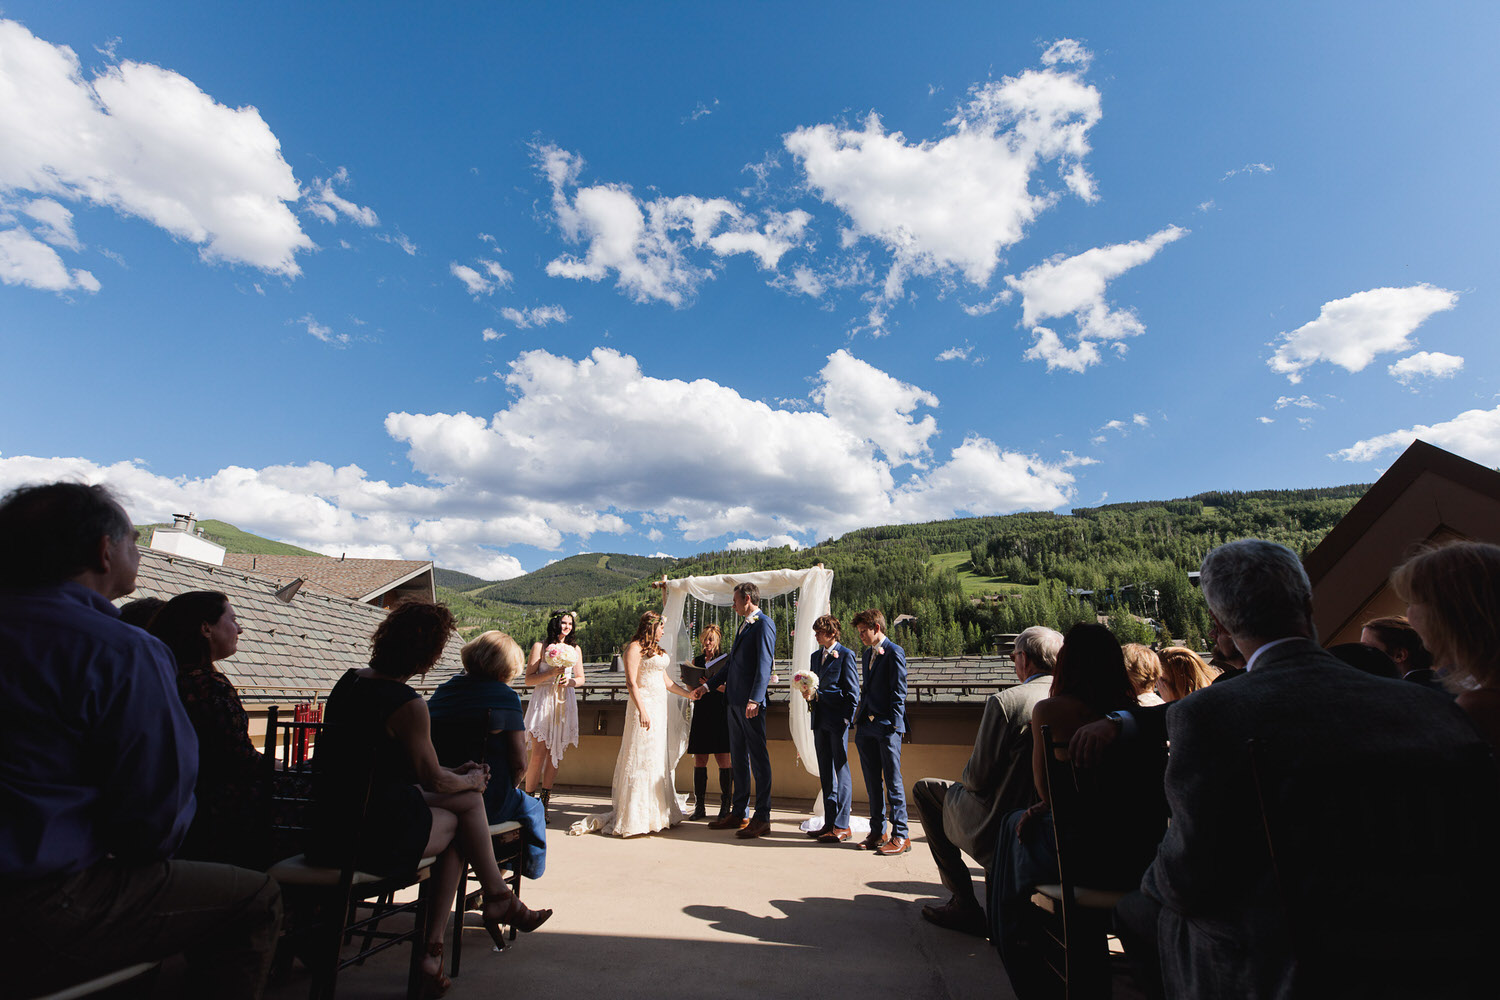 vail-wedding-photographer-tomKphoto-025.jpg